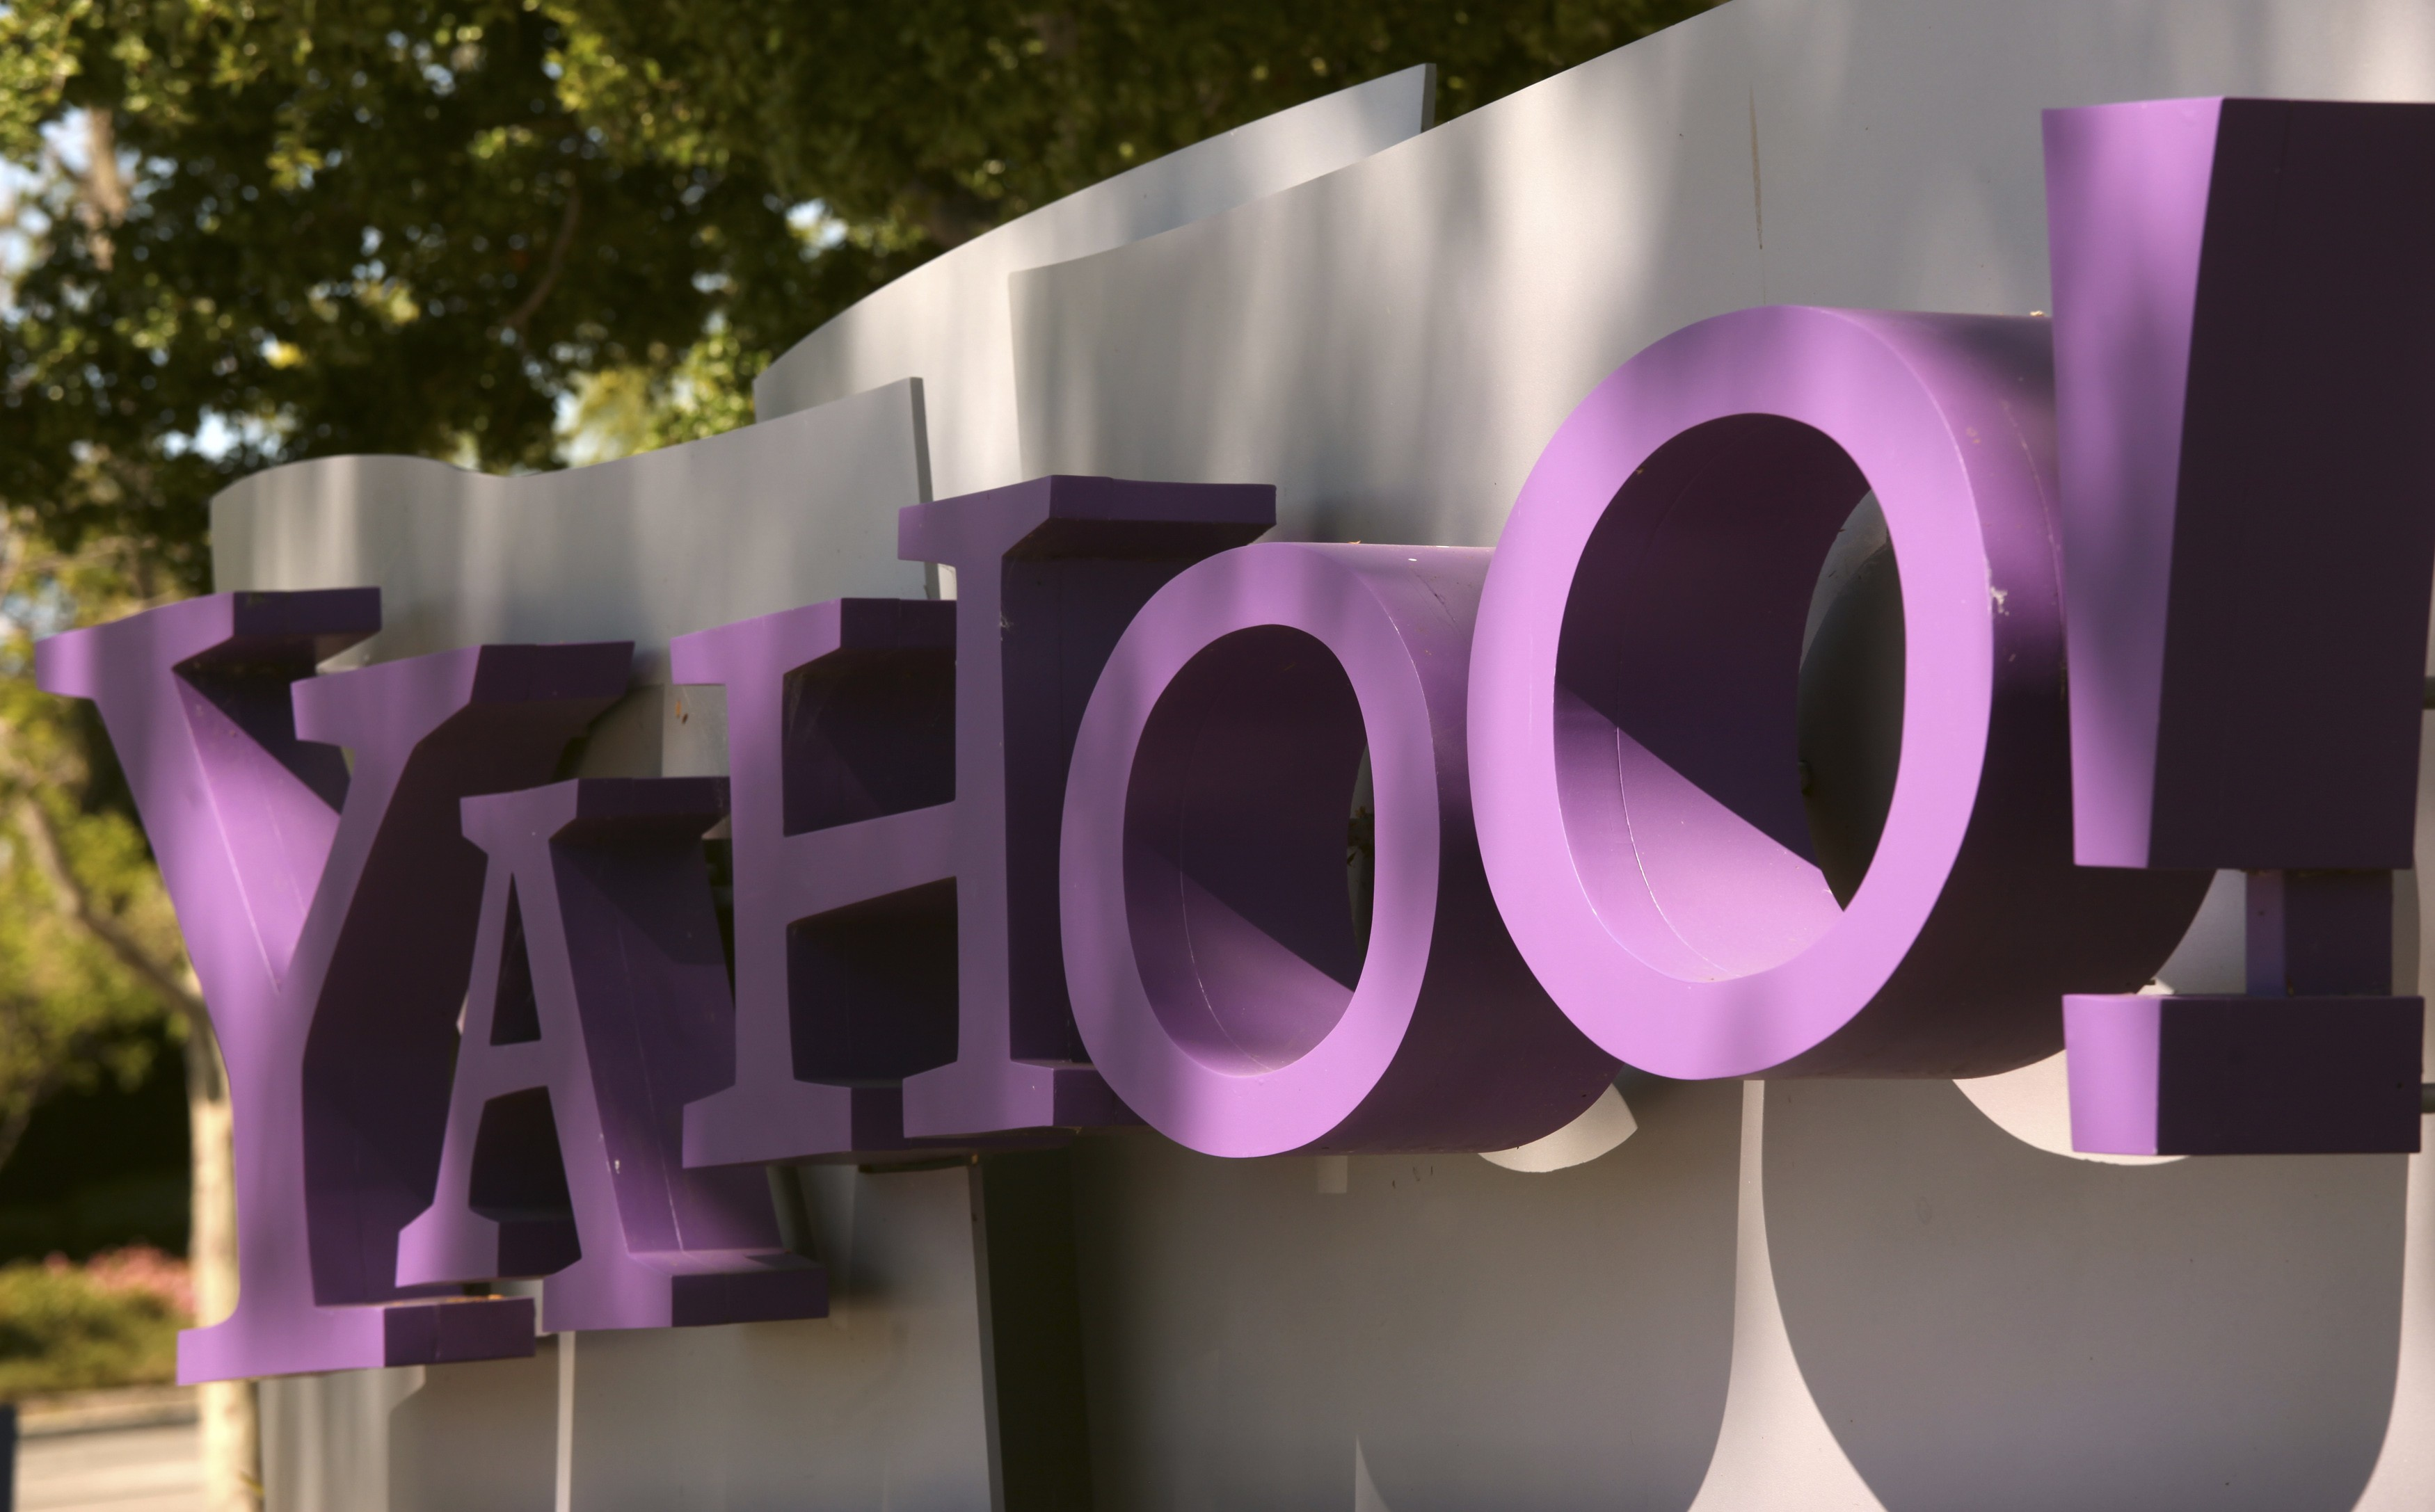 The Yahoo logo